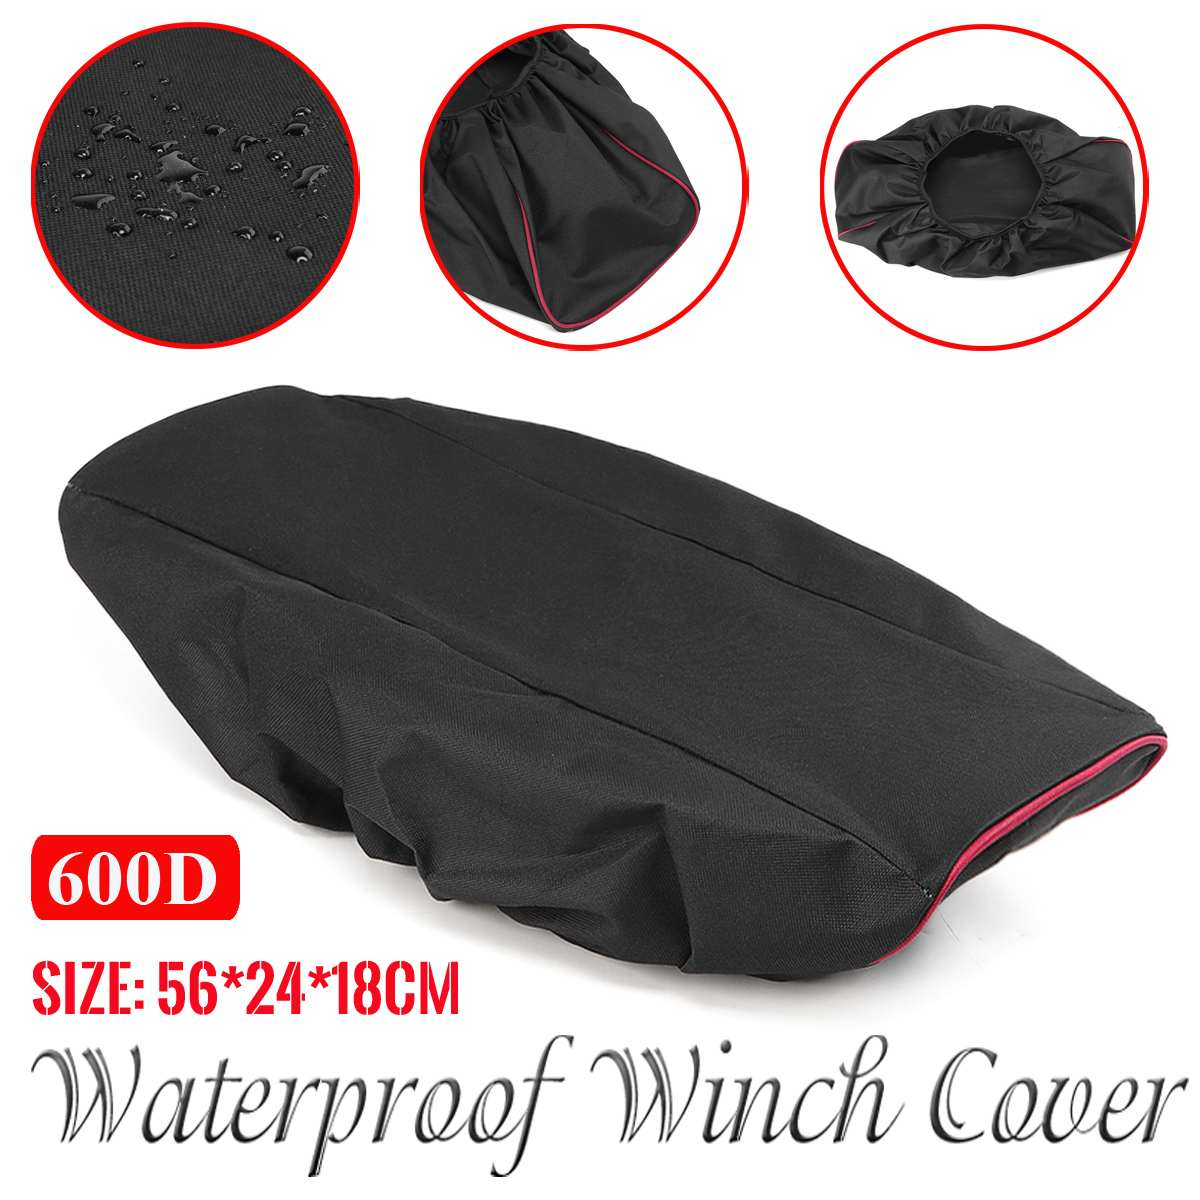 Black Waterproof Soft Winch Cover Mildew-resistant UV Car Covers 600D Oxford Cloth Driver Recovery 56x24x18cm